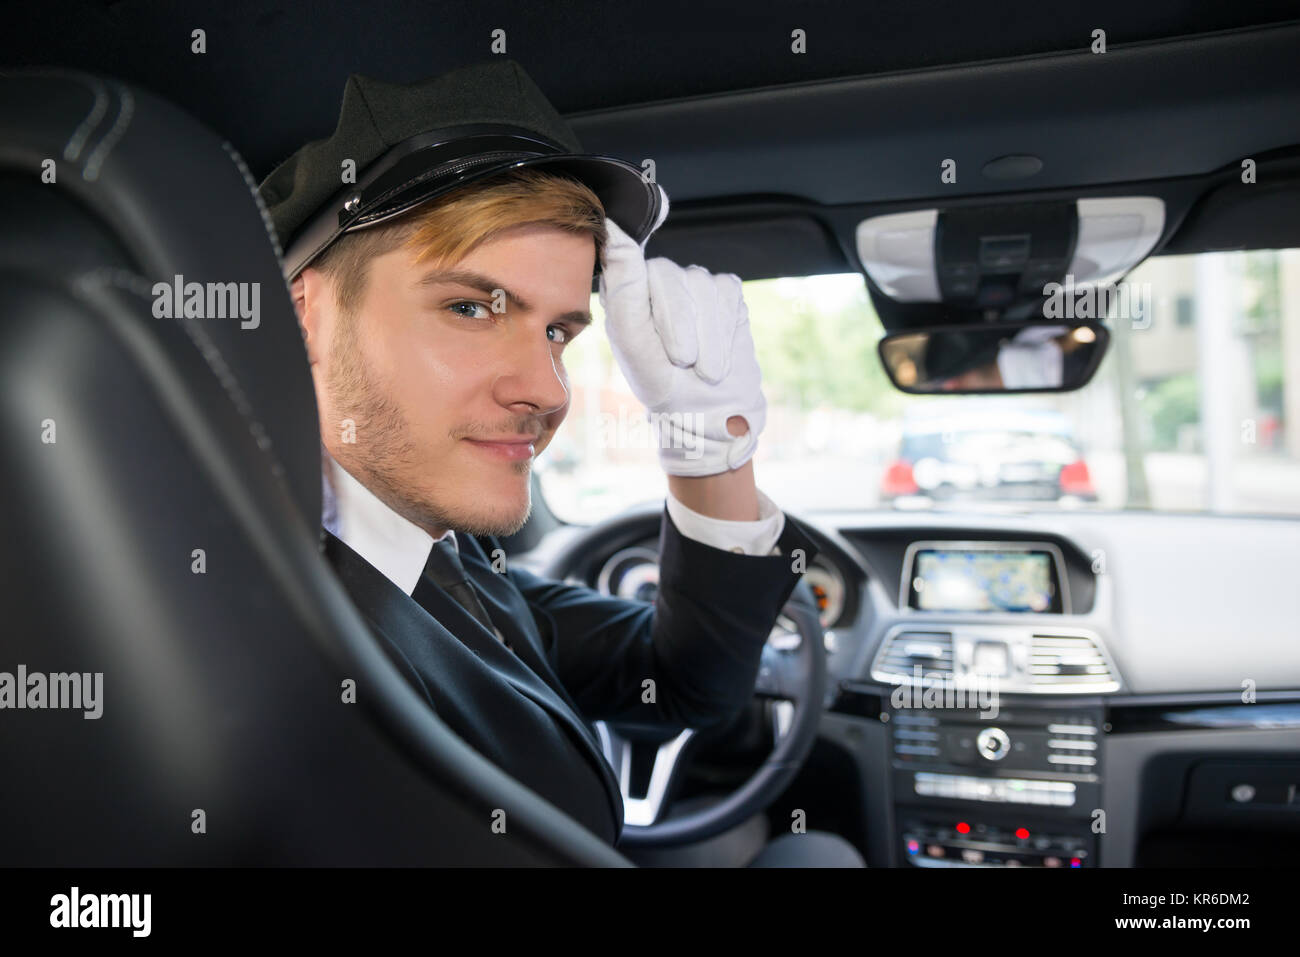 Portrait Of Smiling Young Chauffeur In Car - Stock Image